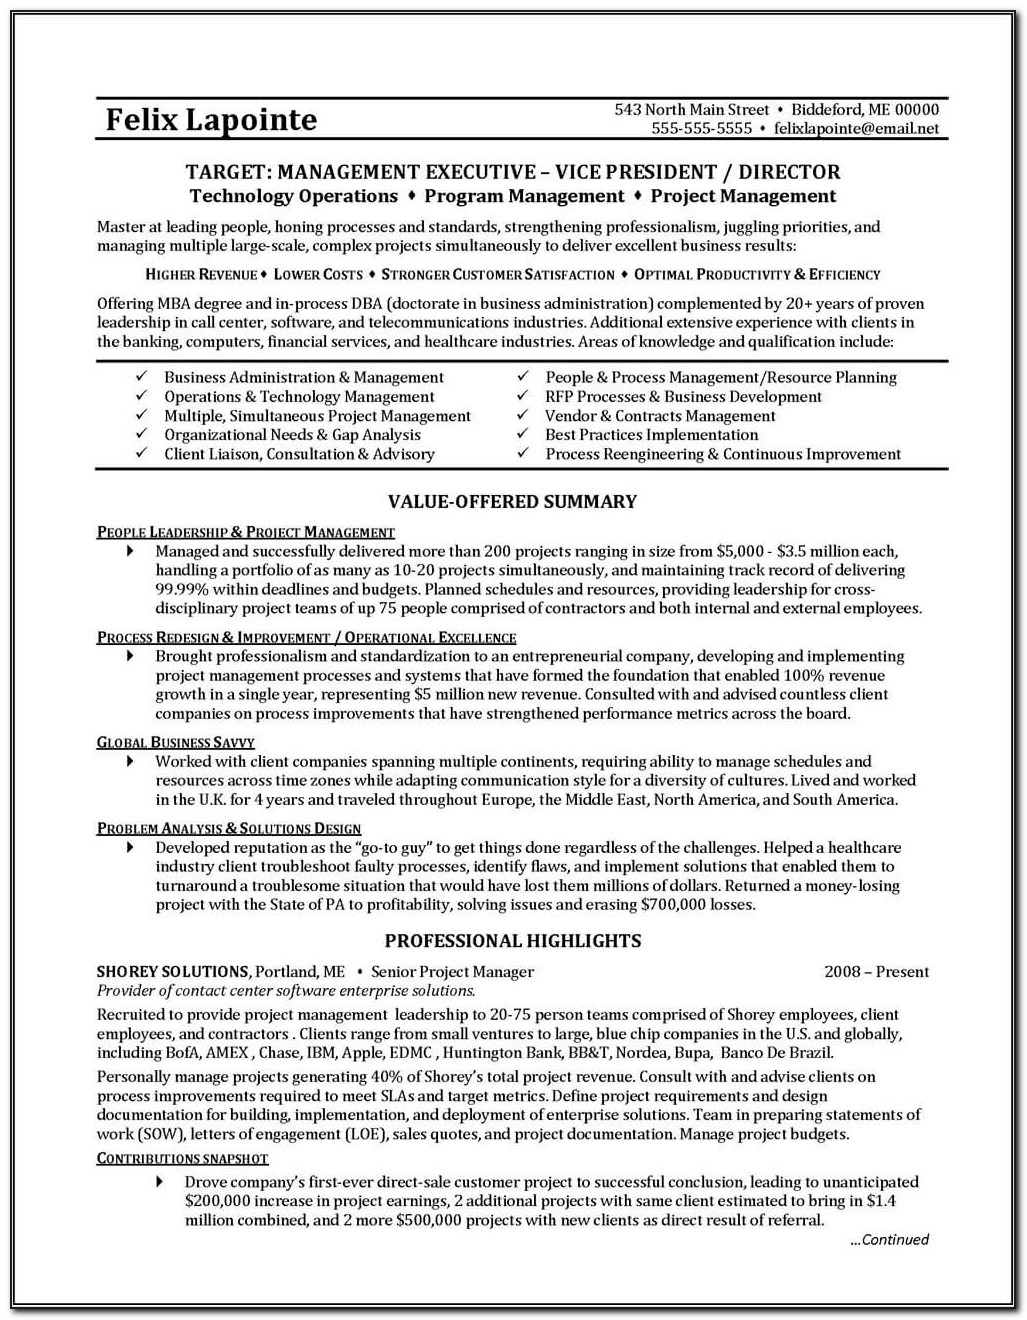 Examples Of Professionally Written Resumes